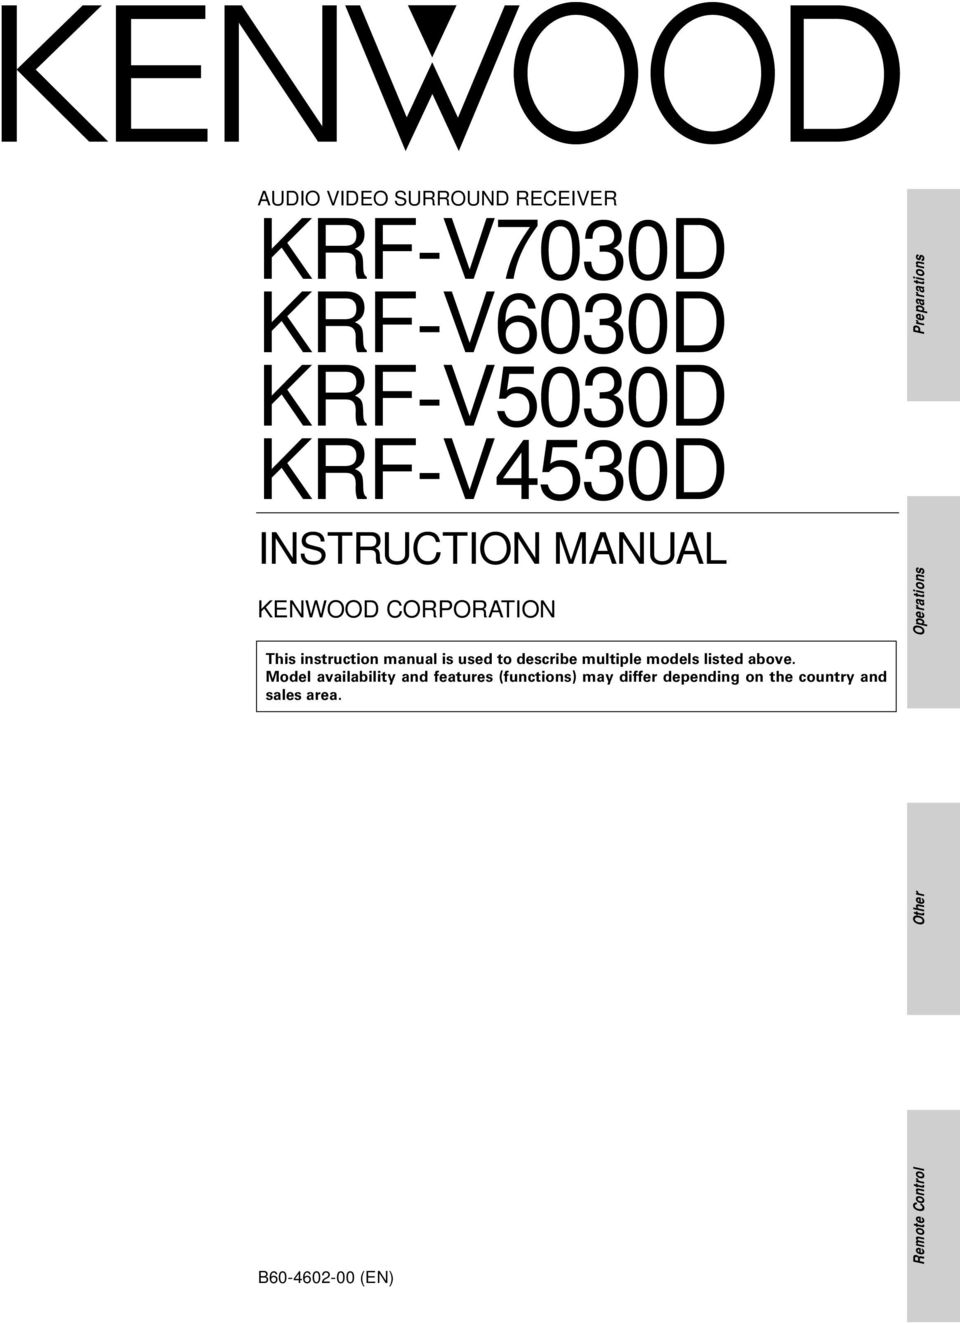 Kenwood Corporation Audio Video Surround Receiver Krf V7030d Stereo Wiring Diagram For Sound Describe Multiple Models Listed Above